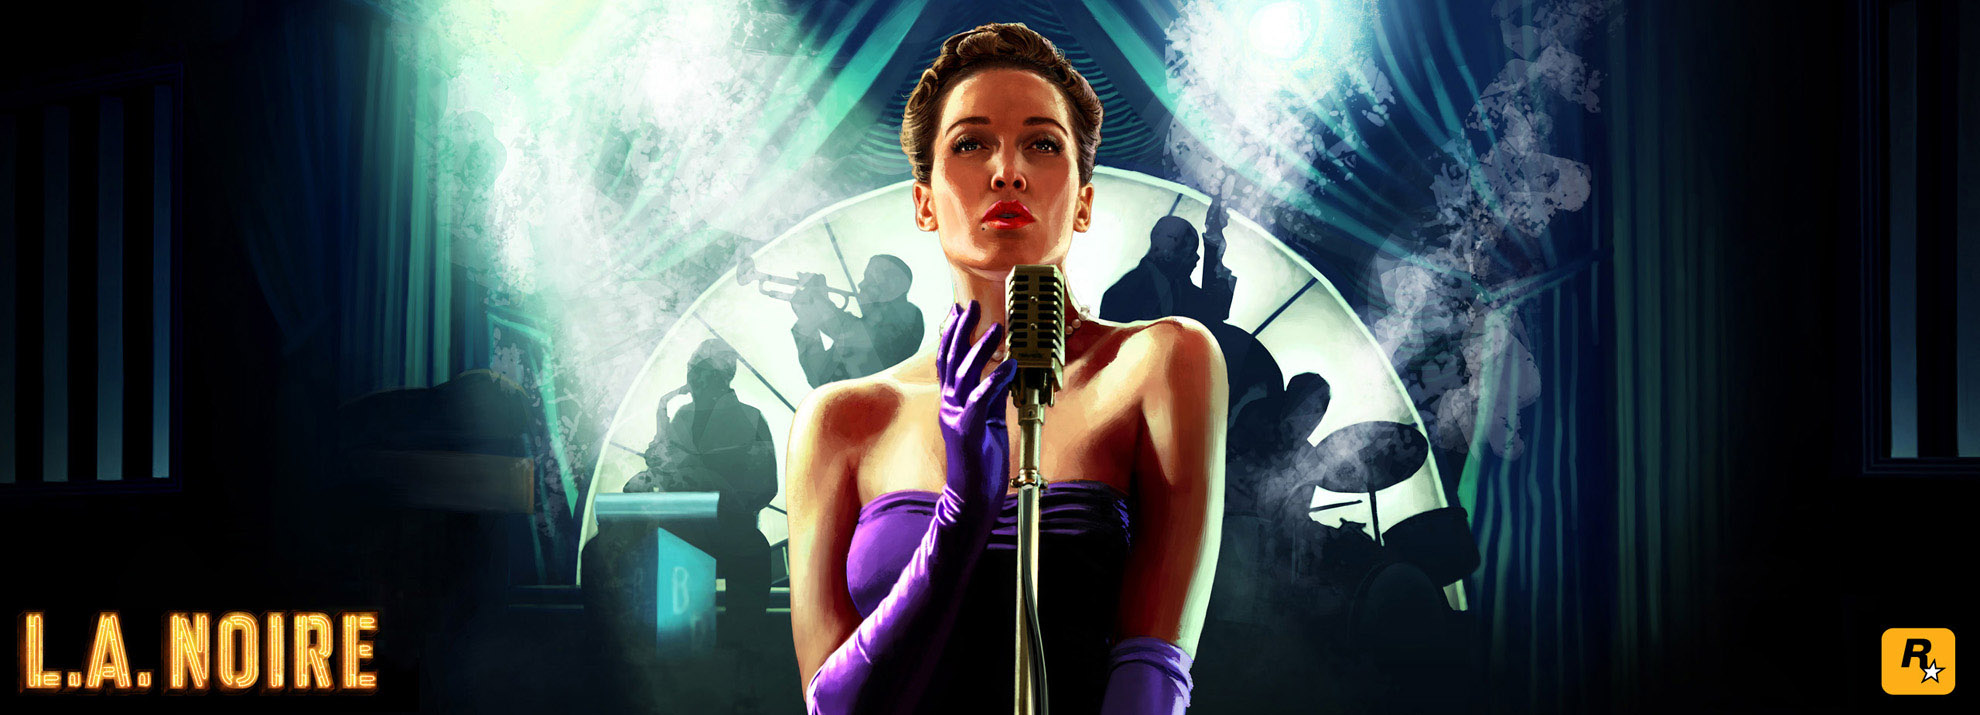 L.A. Noire Official Cover Art Image